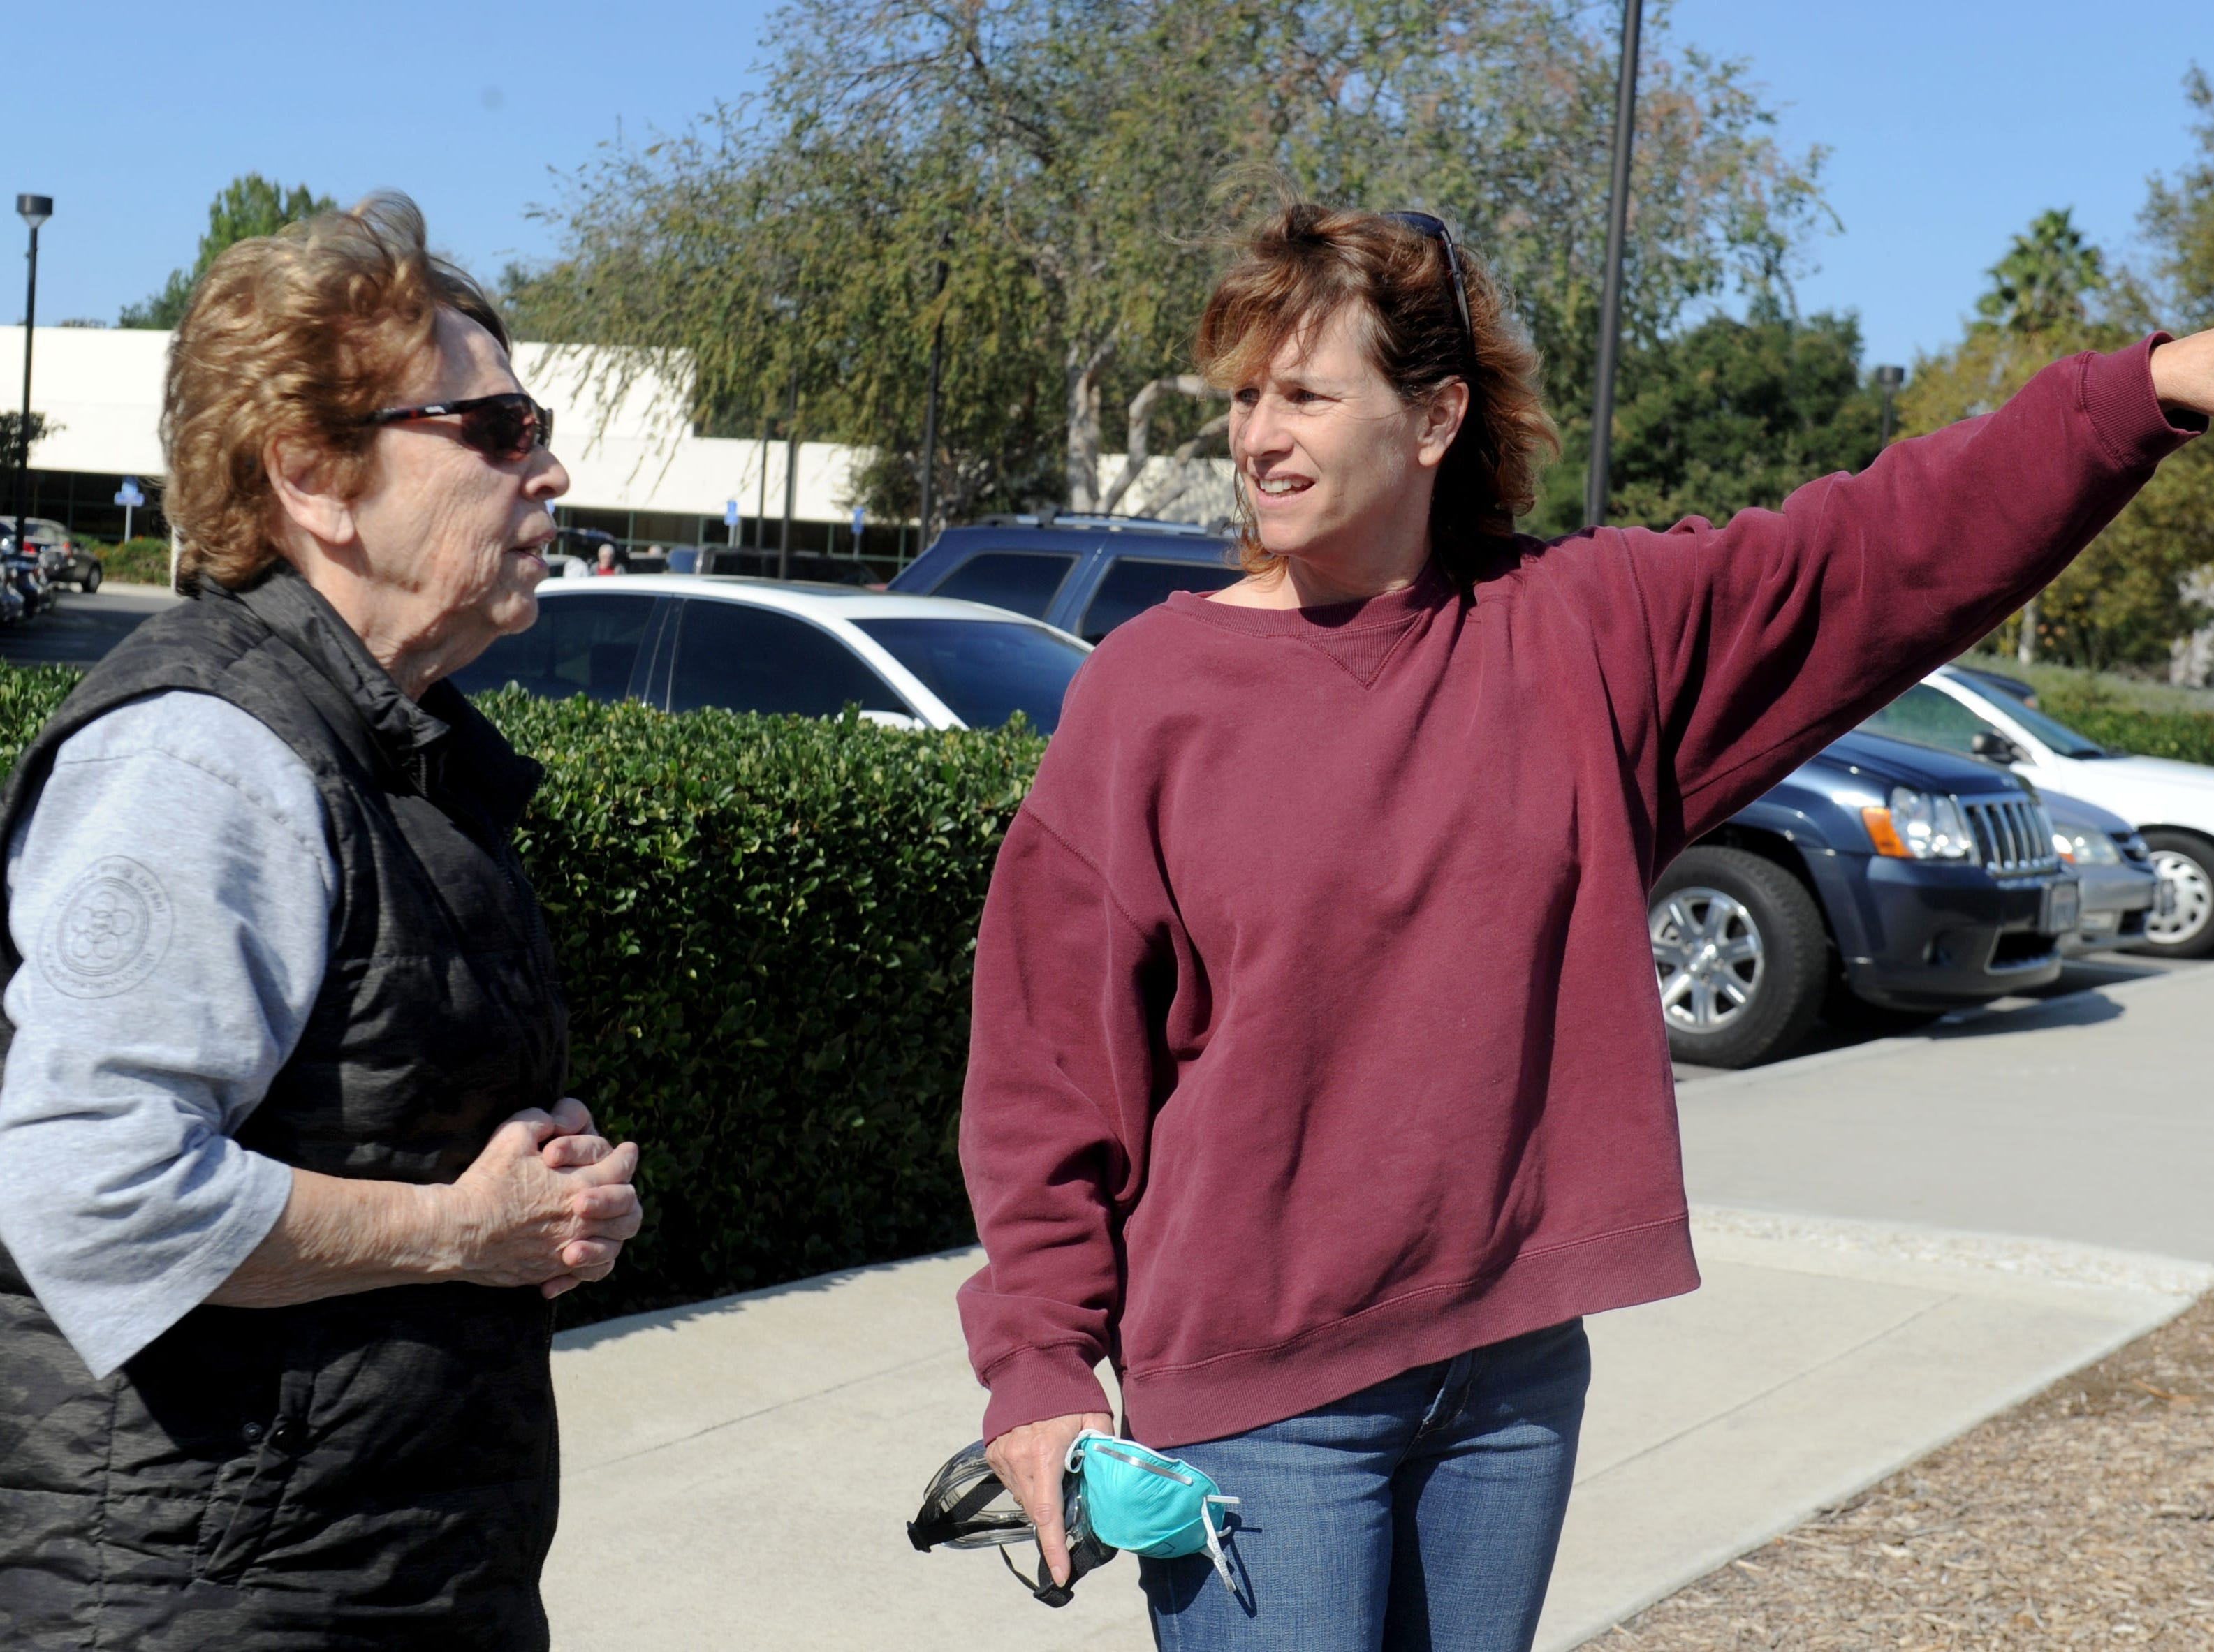 Charlotte Raboy, left, speaks with Allison Moorwood at the Goebel Senior Adult Center in Thousand Oaks on Friday. They were both evacuated from their homes in Thousand Oaks and were staying at the evacuation center.